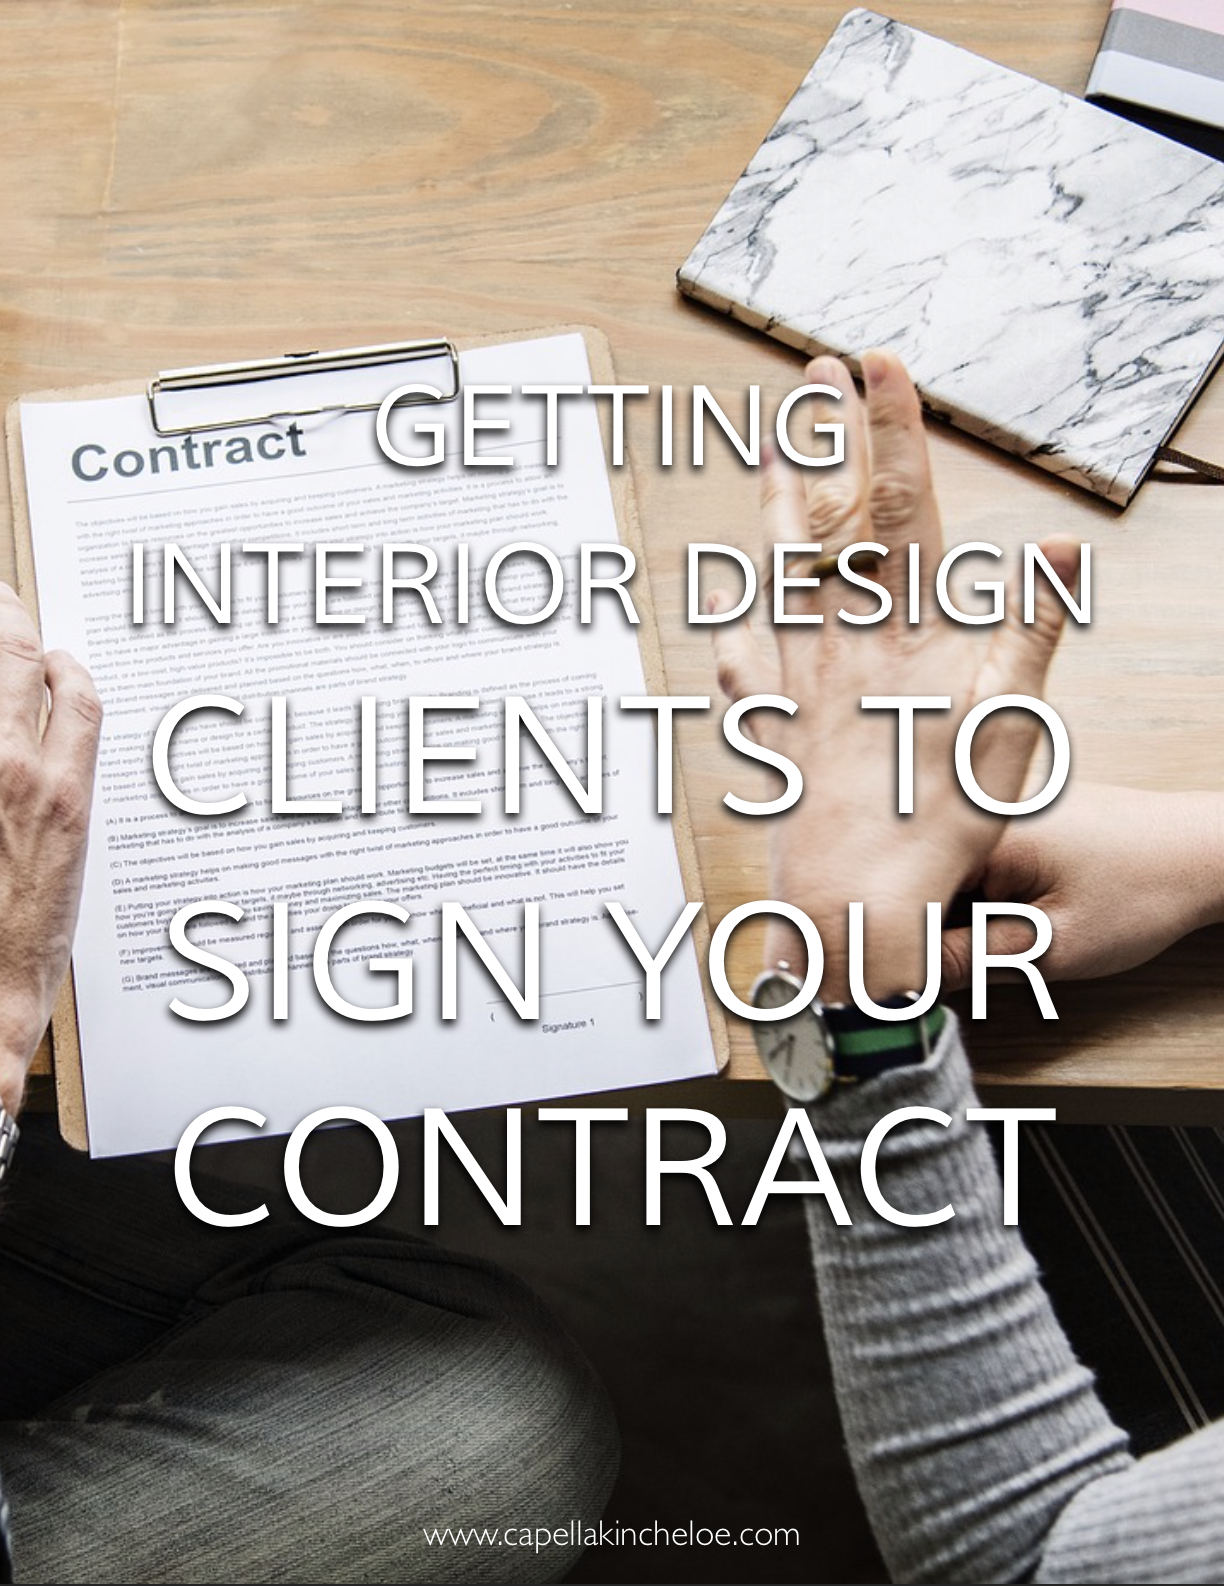 Getting interior design clients to sign your contract. #interiordesignbusiness #cktradesecrets #interiordesigncontract #interiordesignclients